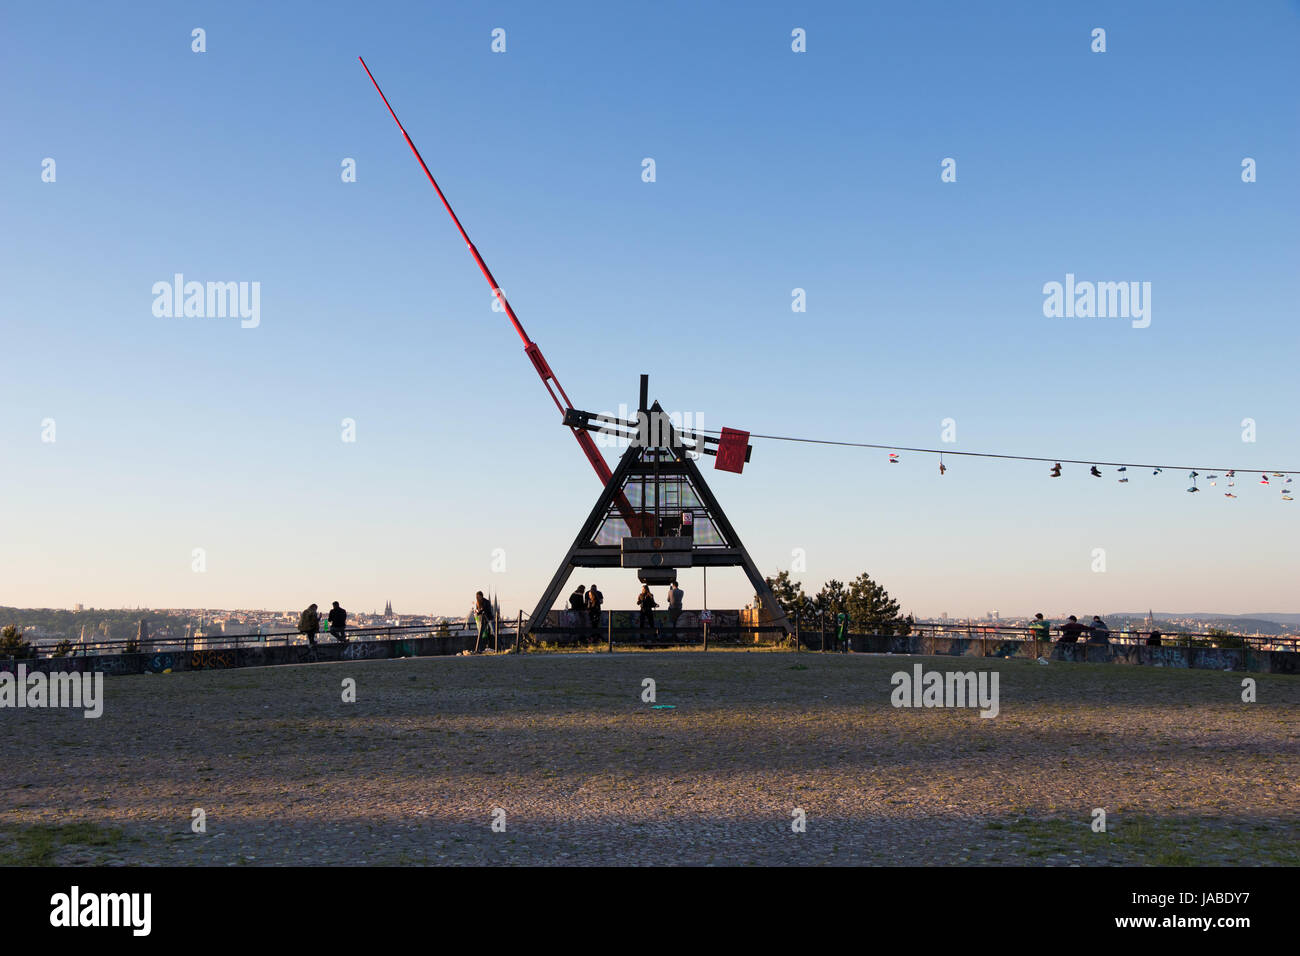 PRAGUE, CZECH REPUBLIC - MAY 28, 2017: Giant metronome in the Letna park above the city - Stock Image